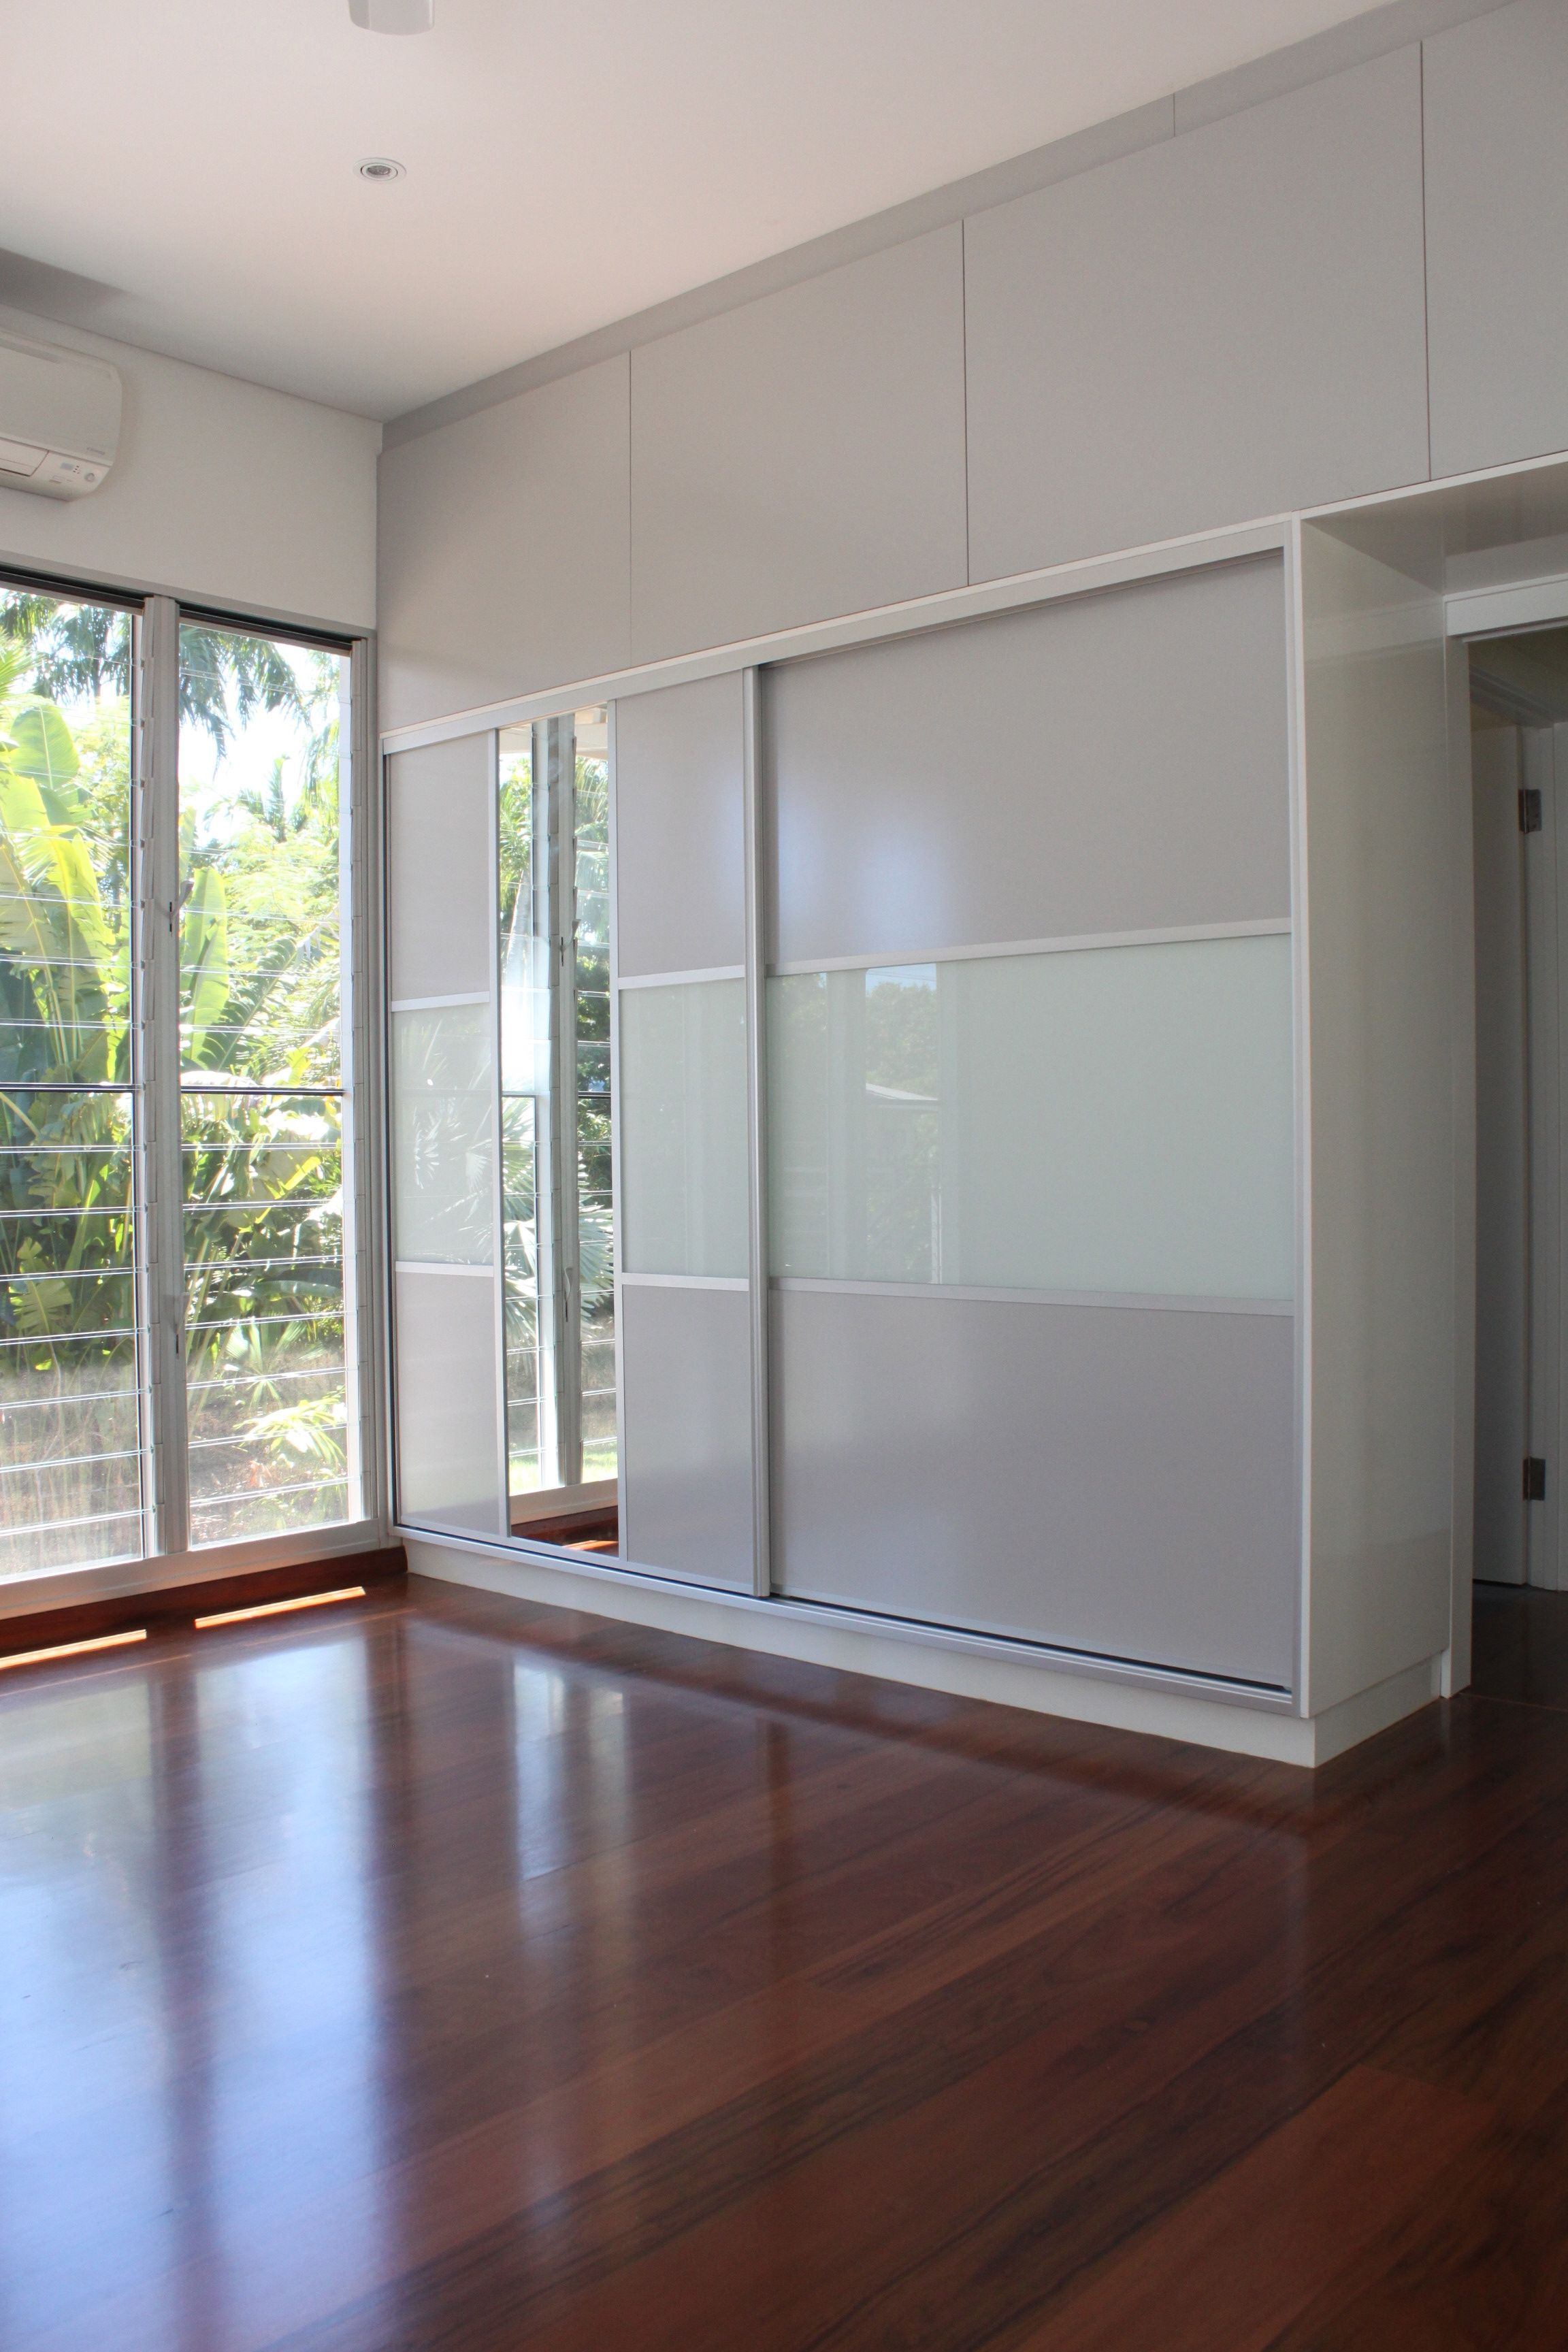 Sliding Closet Doors Design Ideas And Options: Panels Used In These Sliding Doors Compliment The Existing